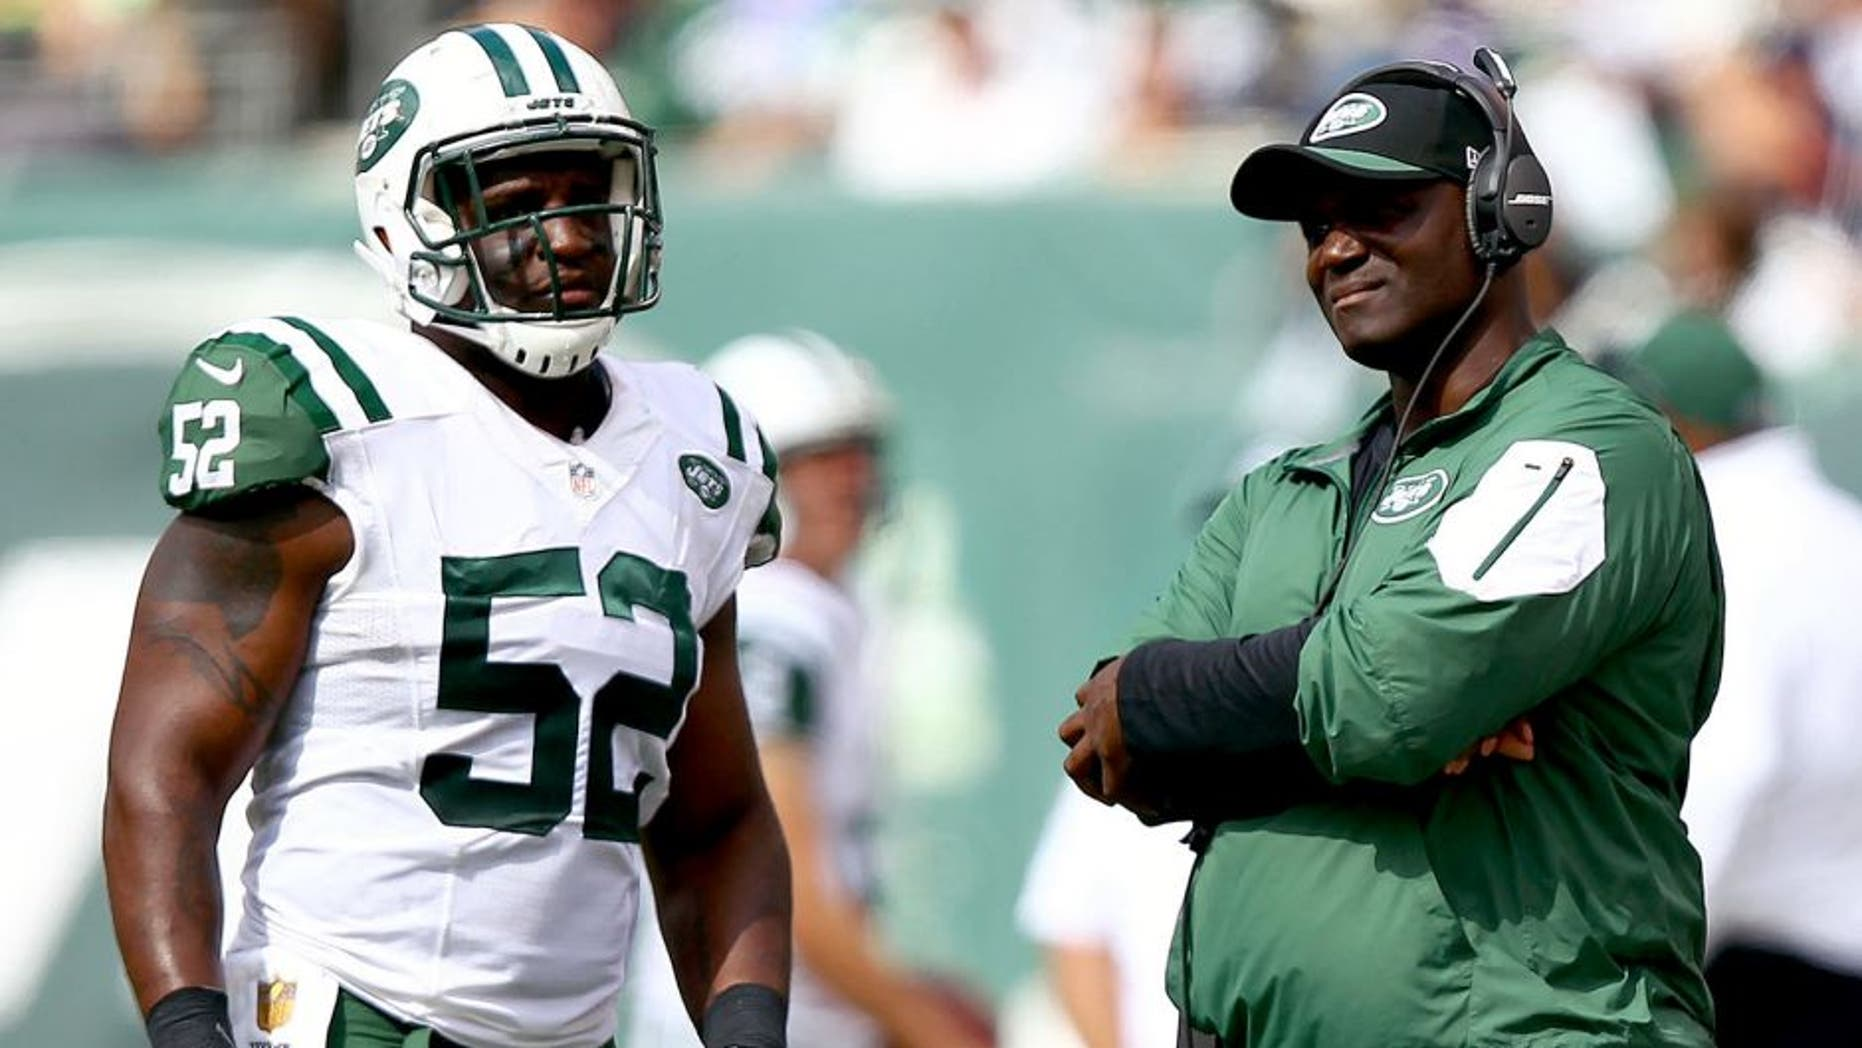 Sep 13, 2015; East Rutherford, NJ, USA; New York Jets head coach Todd Bowles talks to New York Jets linebacker David Harris (52) during the first half at MetLife Stadium. Mandatory Credit: Danny Wild-USA TODAY Sports